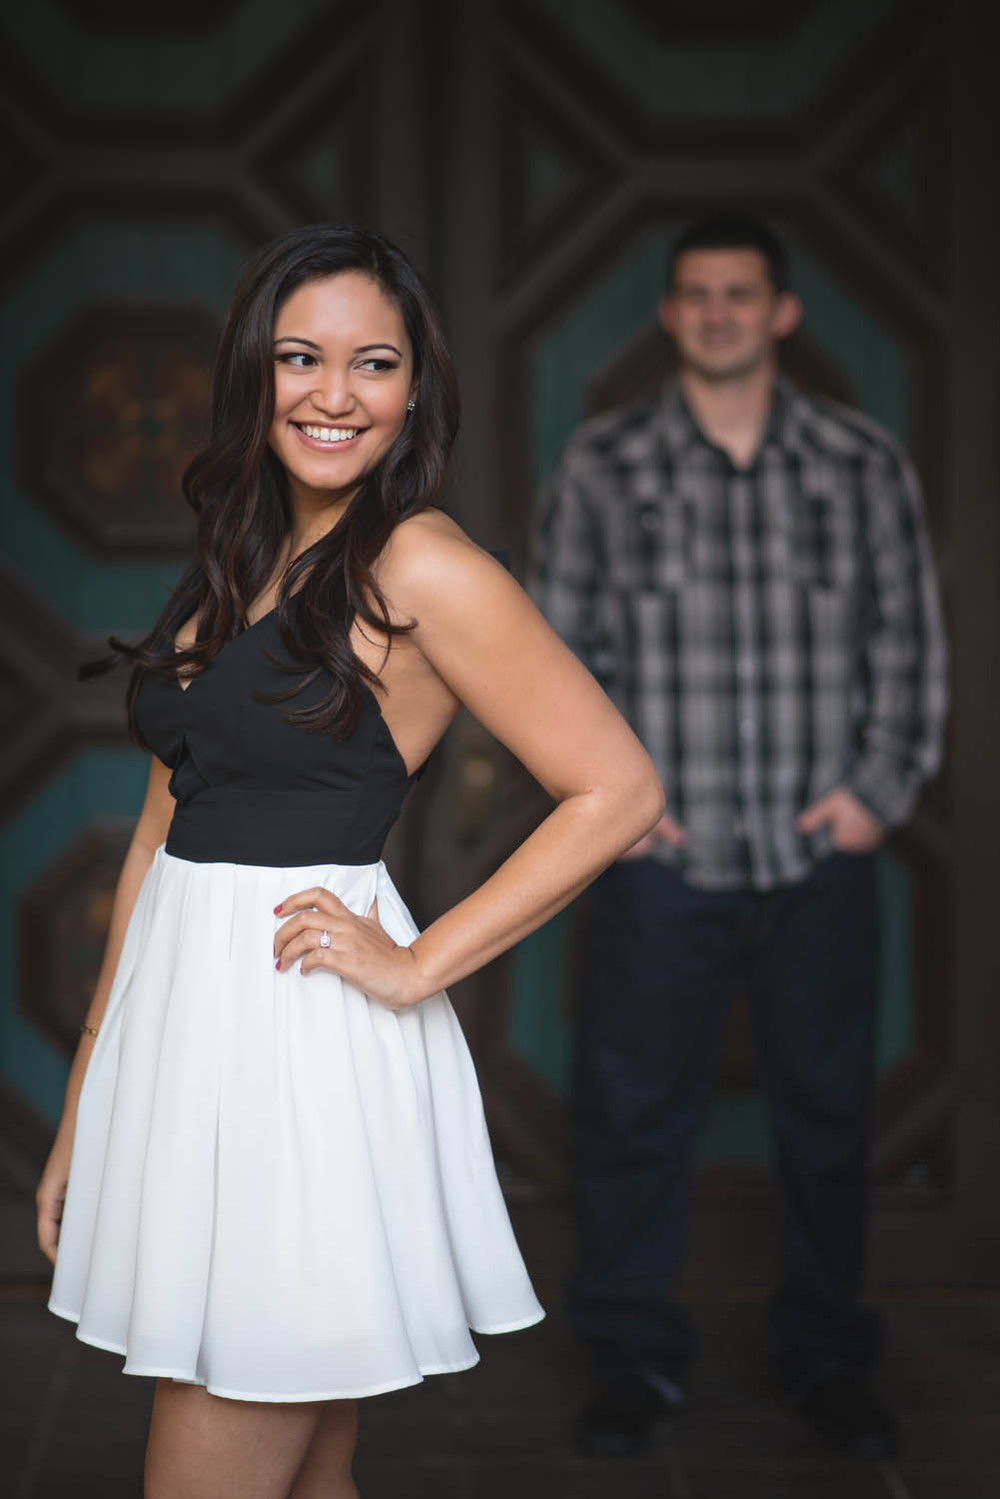 balboa-park-engagement-photos-ian-andrew-photography-062.jpg